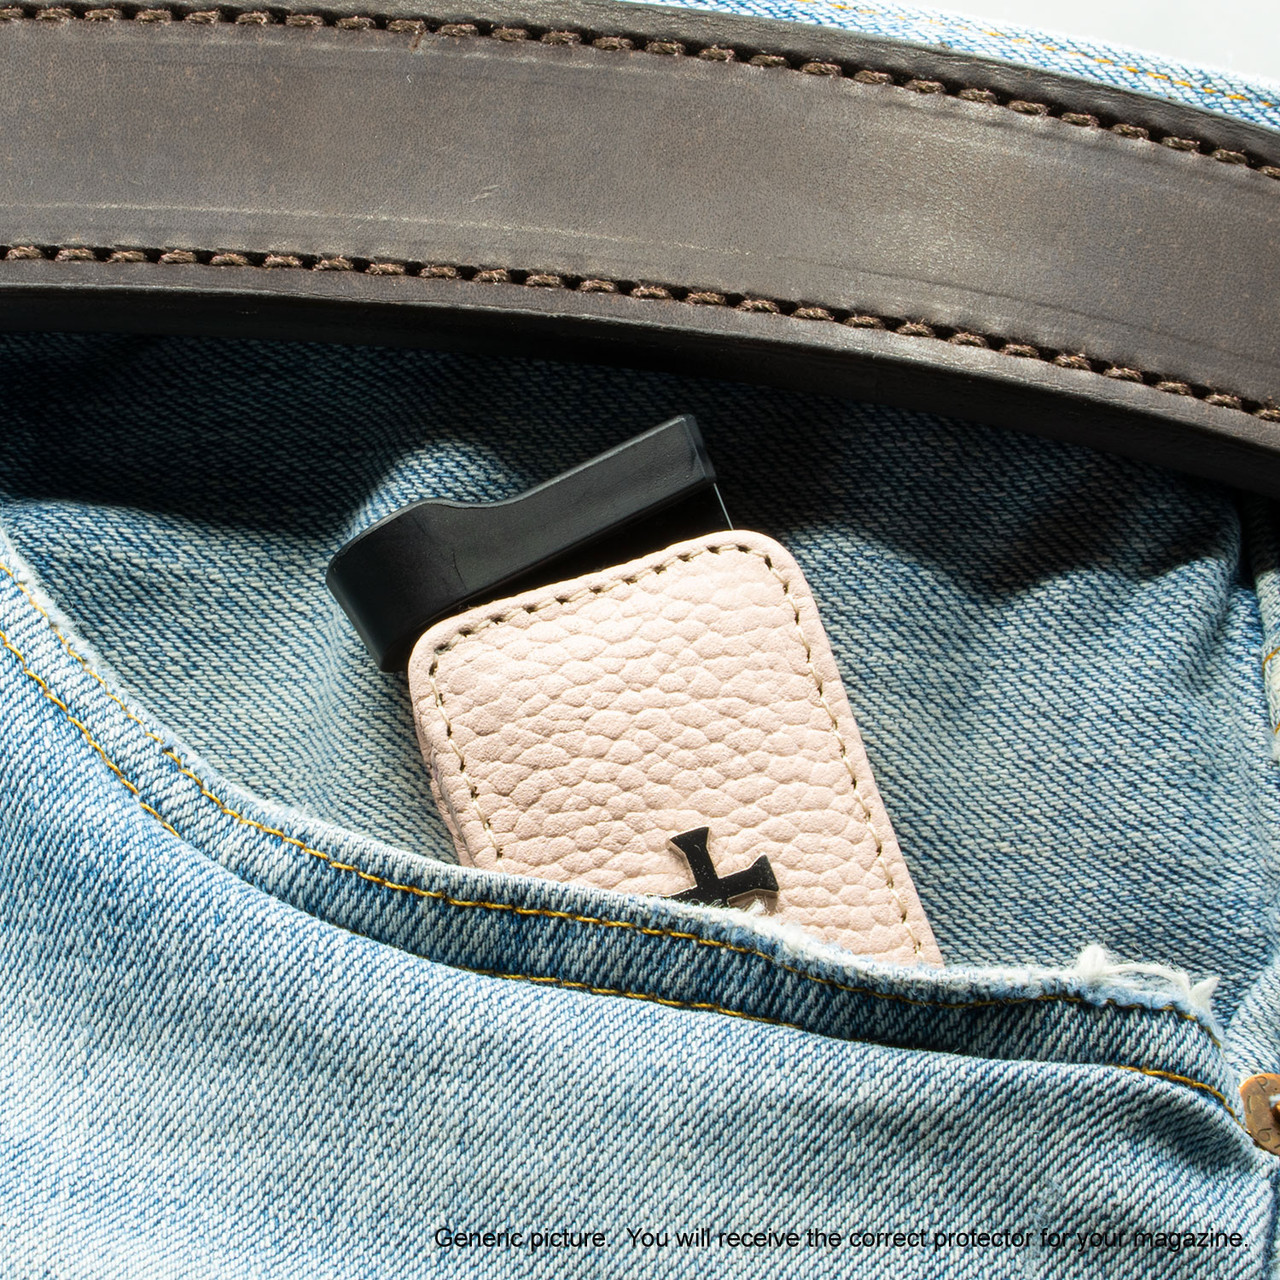 Beretta APX Carry Holsters Pink Carry Faithfully Cross Magazine Pocket Protector